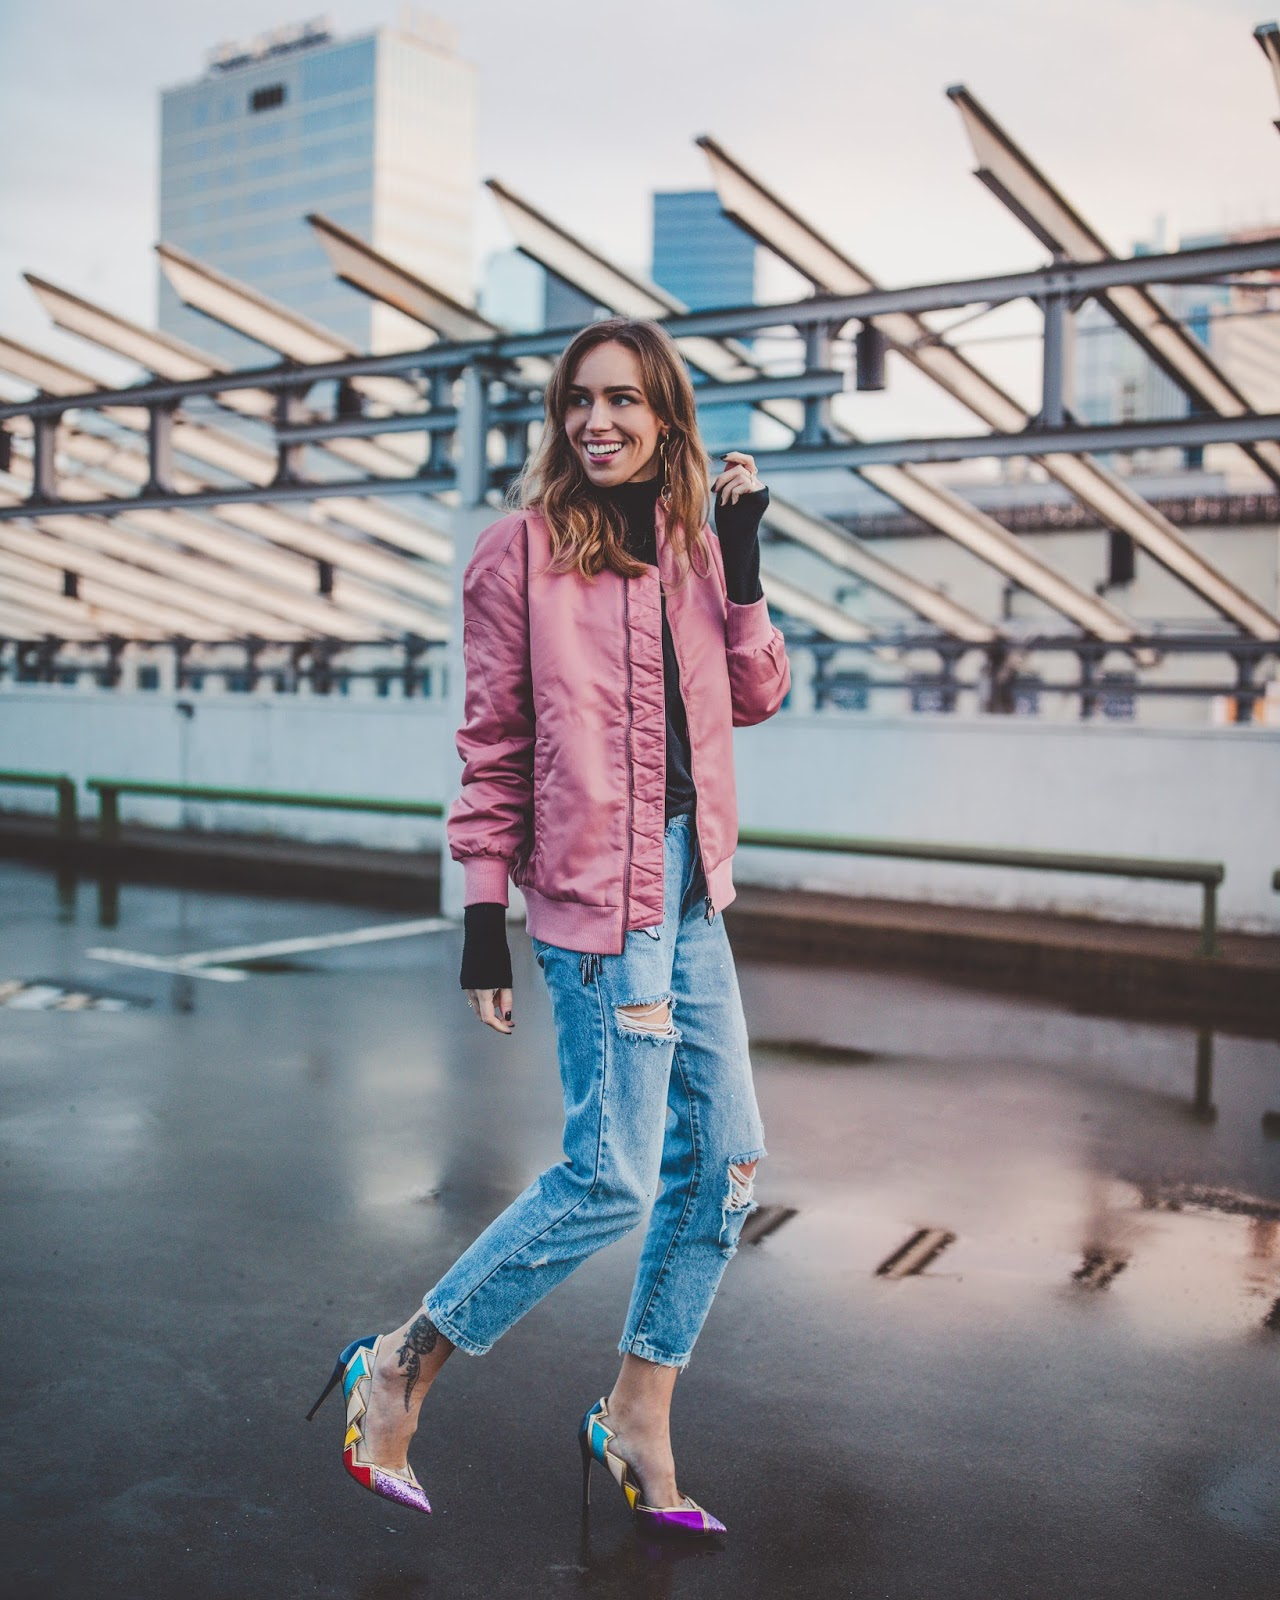 capturing movement walking street style outfit photography tips